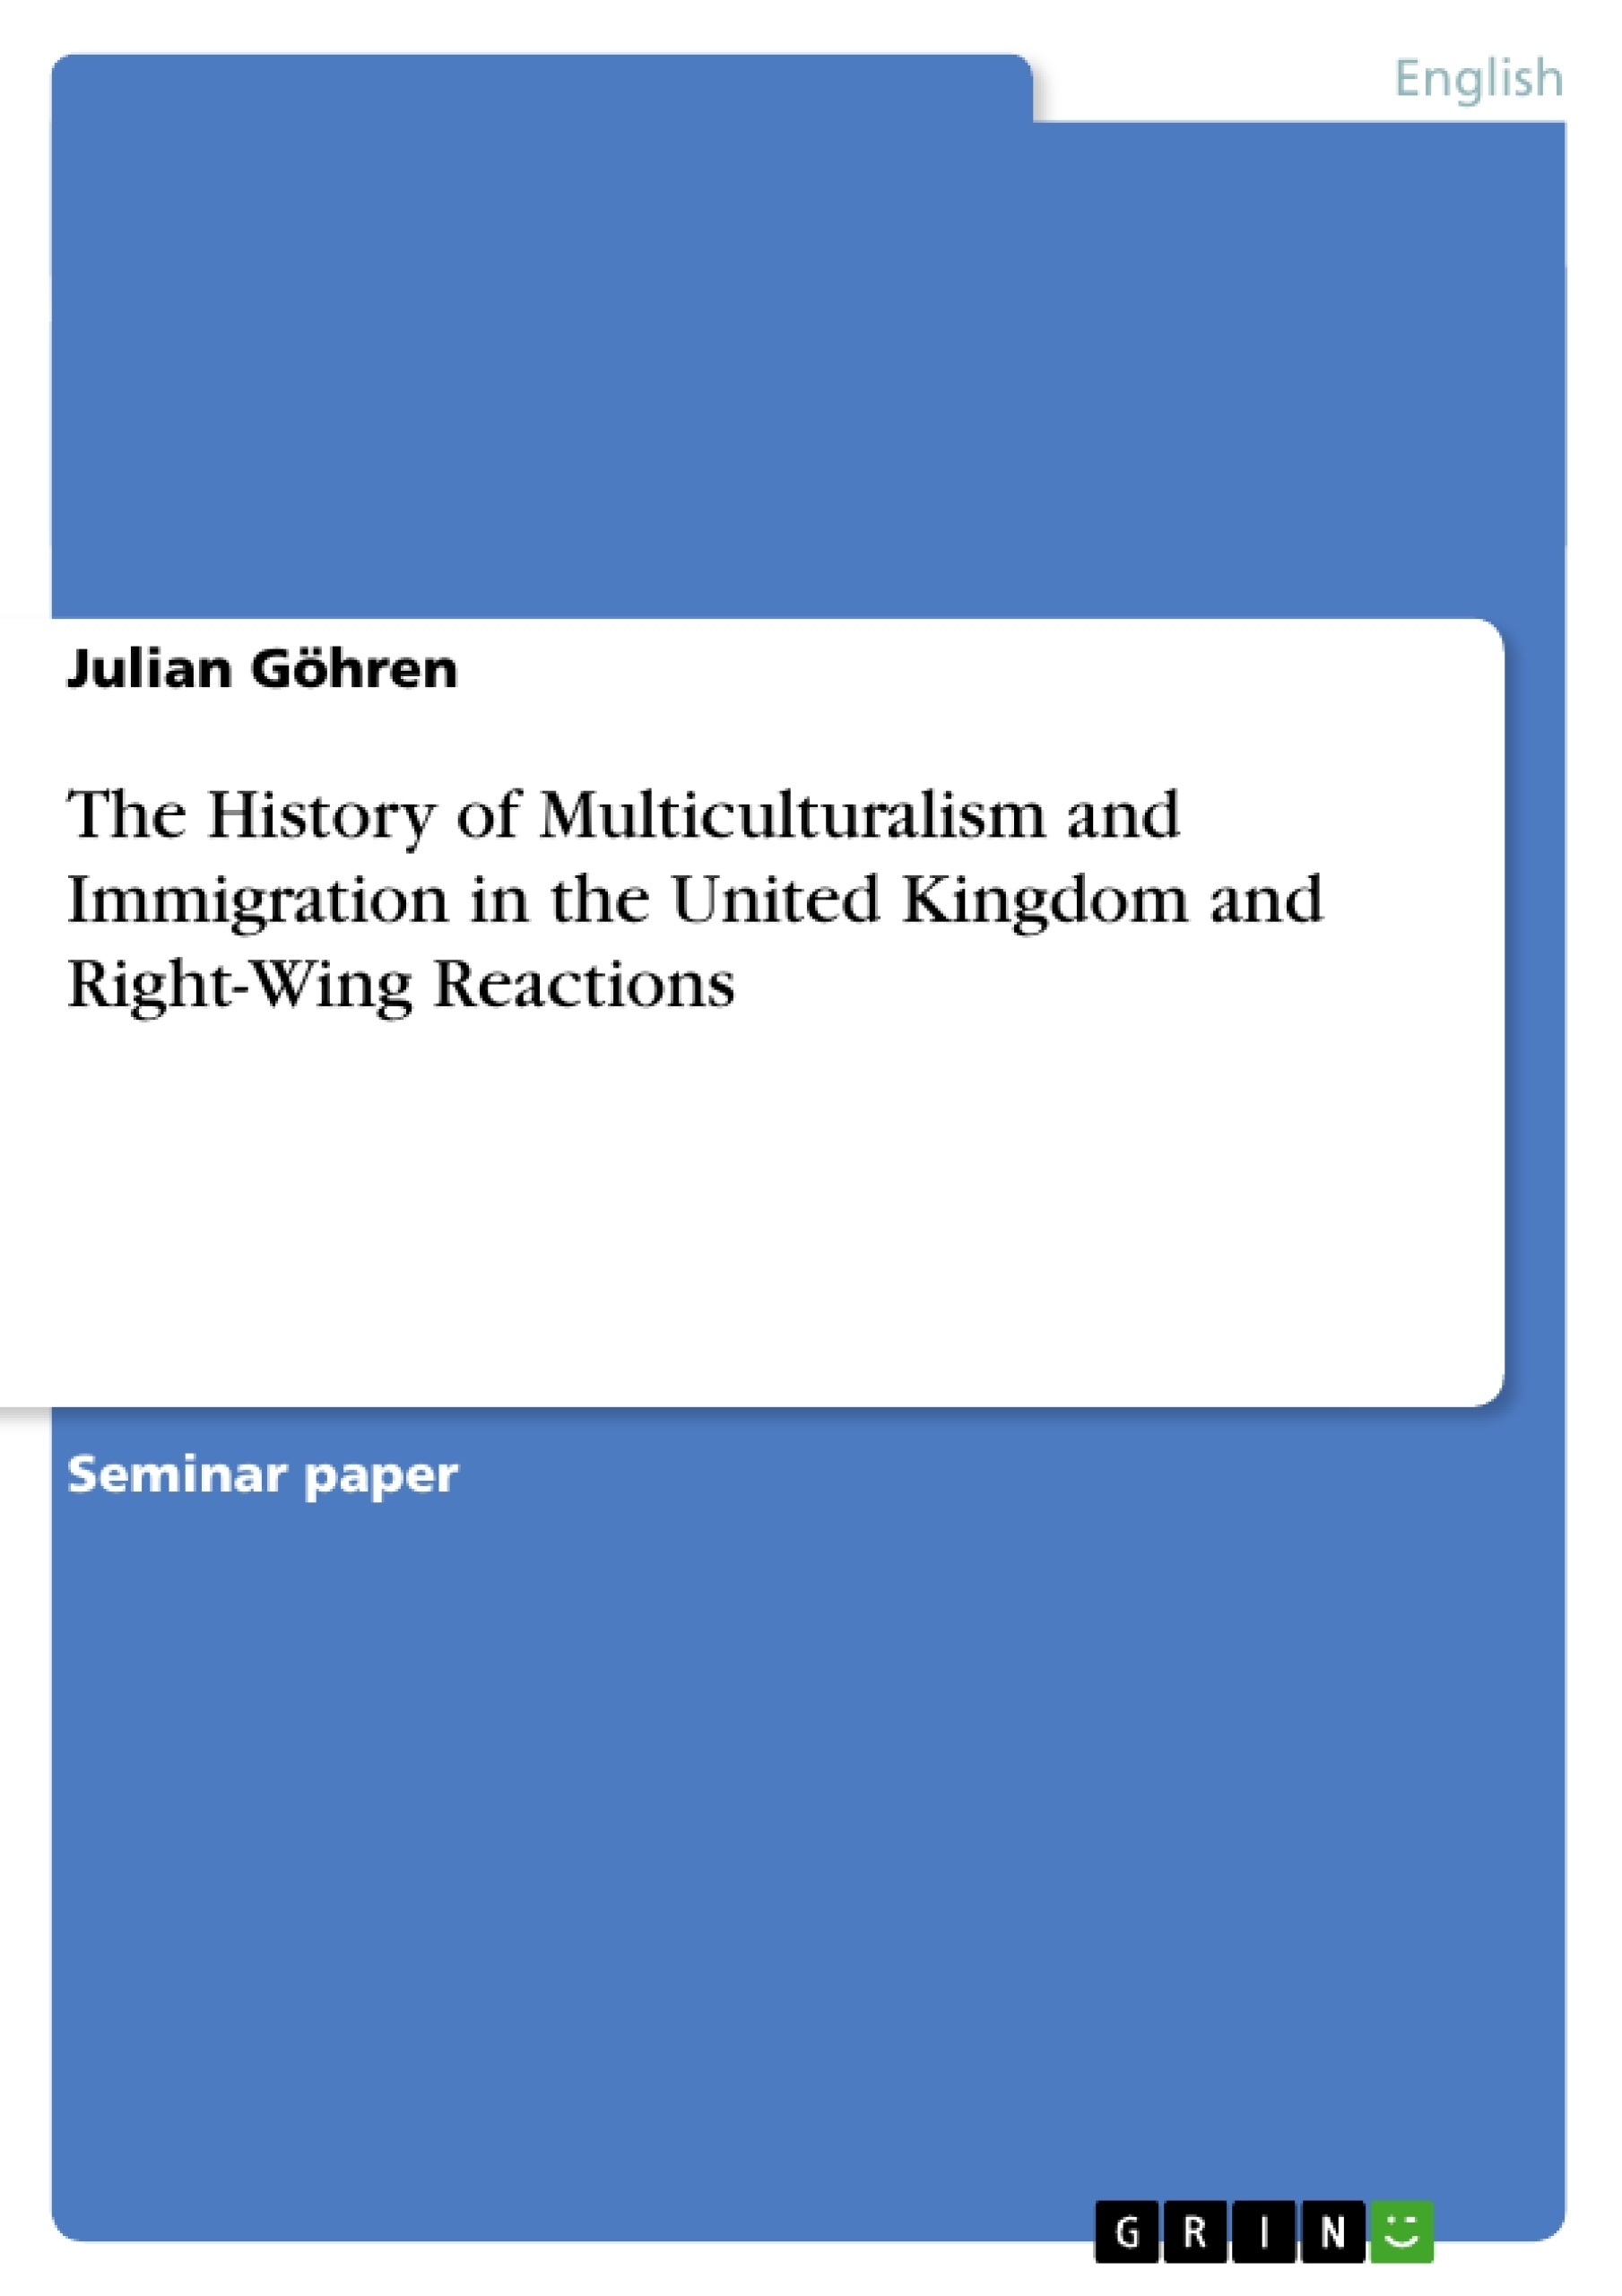 essay about immigration in united states creation myth essay  the history of multiculturalism and immigration in the united the history of multiculturalism and immigration in